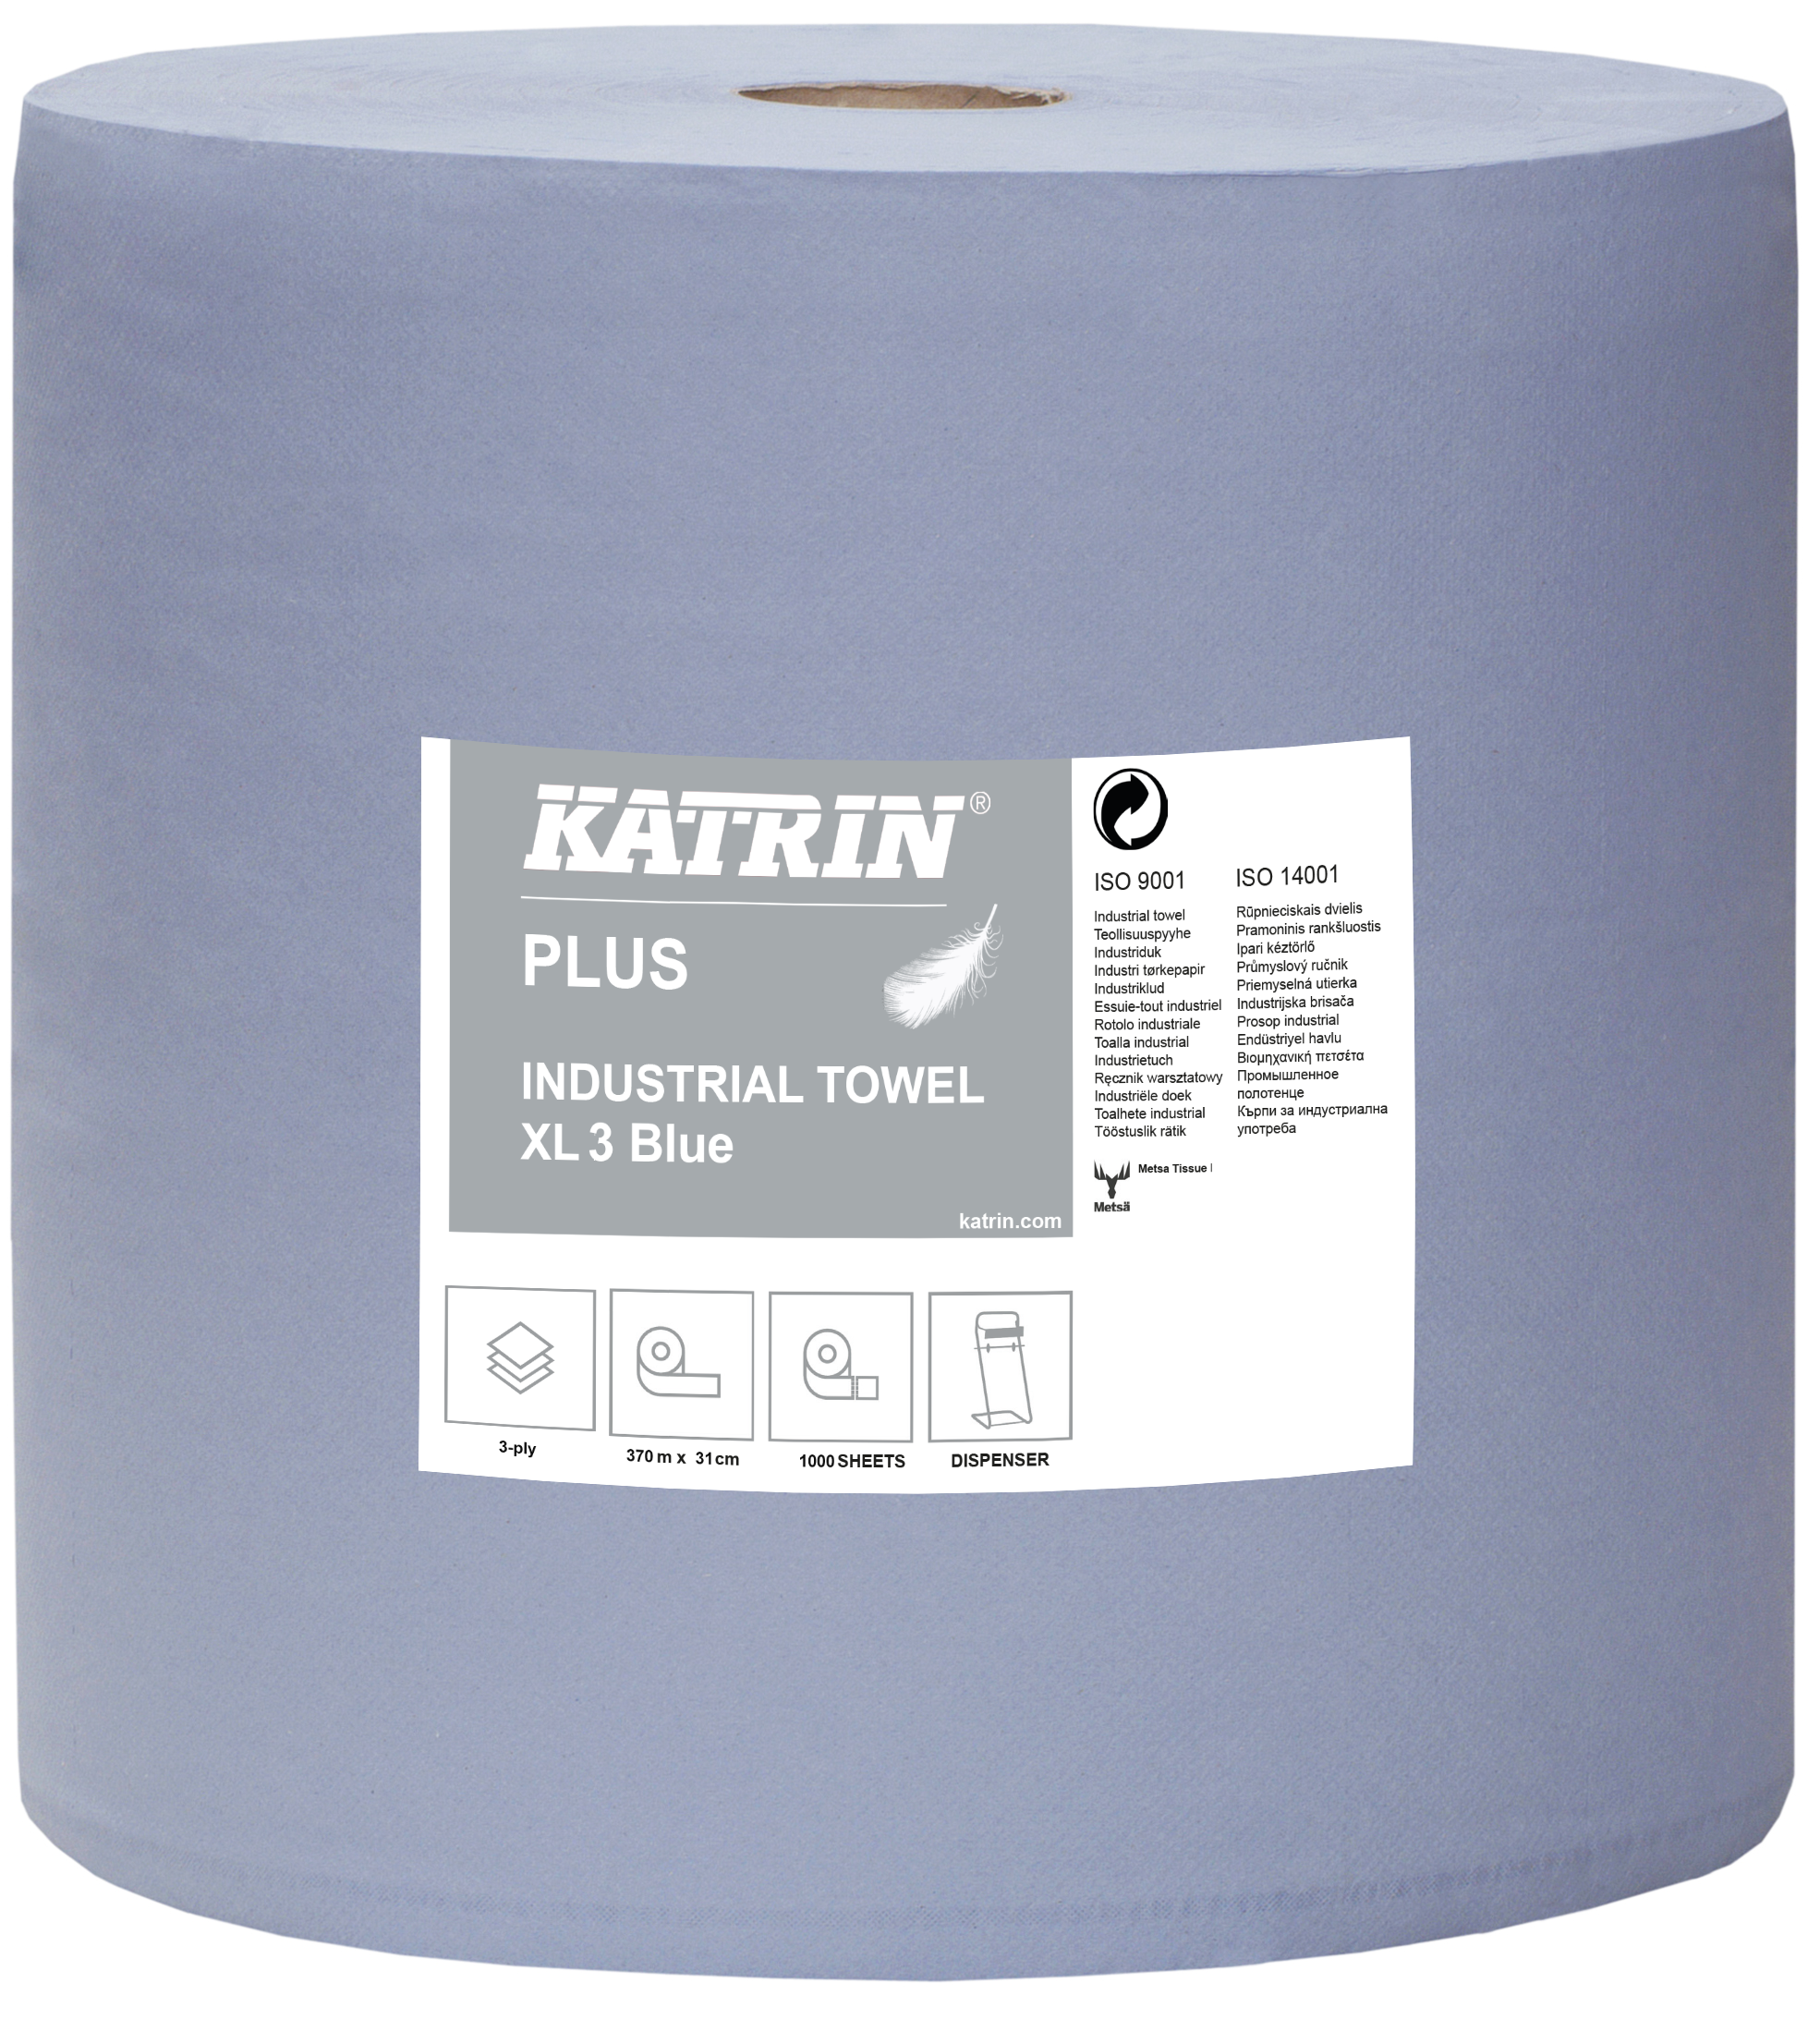 Katrin Plus Industrial Towel XL3 Blue